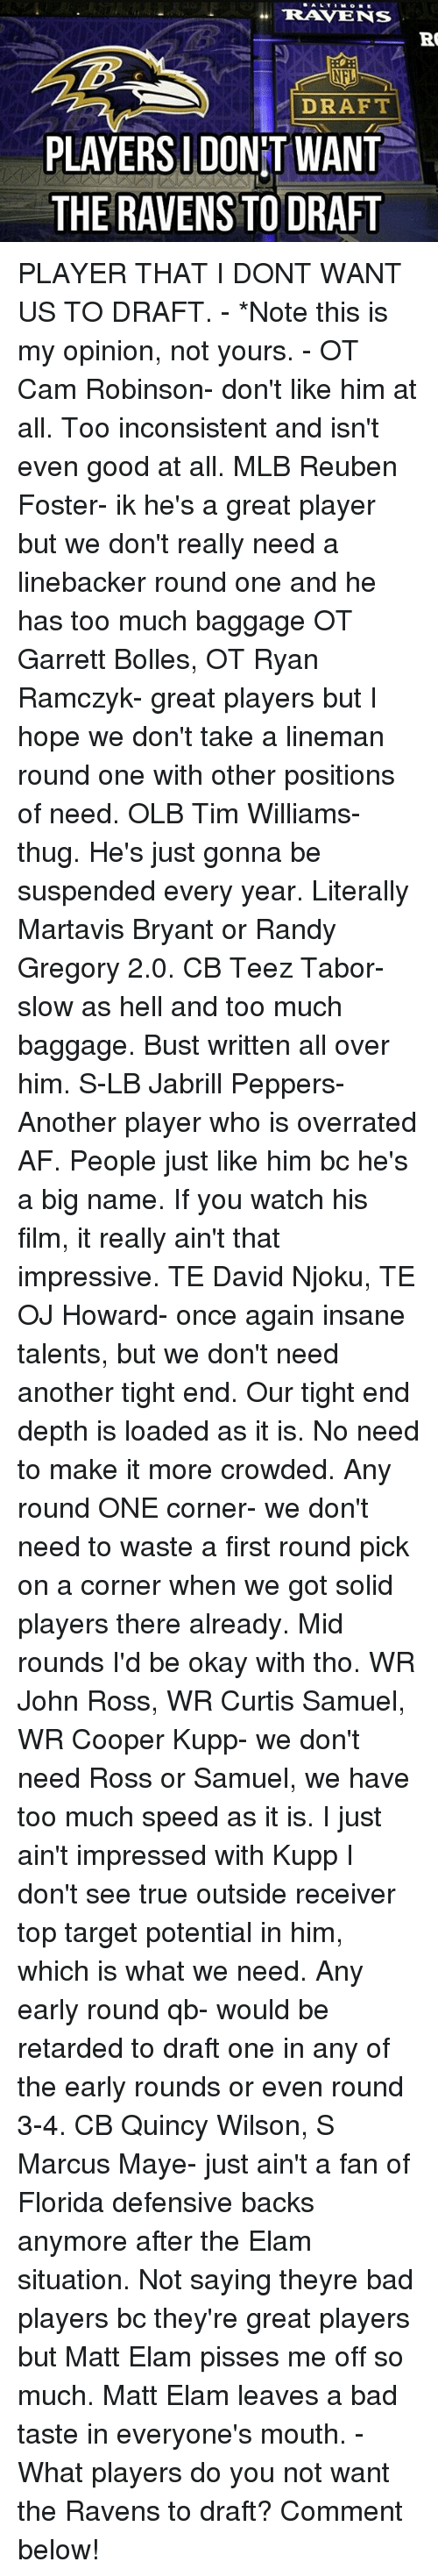 Af, Bad, and Memes: TERRA TENS  RO  NFL  DRAFT  IDO  WANT  PLAYERSI THE RAVENS TO DRAFT PLAYER THAT I DONT WANT US TO DRAFT. - *Note this is my opinion, not yours. - OT Cam Robinson- don't like him at all. Too inconsistent and isn't even good at all. MLB Reuben Foster- ik he's a great player but we don't really need a linebacker round one and he has too much baggage OT Garrett Bolles, OT Ryan Ramczyk- great players but I hope we don't take a lineman round one with other positions of need. OLB Tim Williams- thug. He's just gonna be suspended every year. Literally Martavis Bryant or Randy Gregory 2.0. CB Teez Tabor- slow as hell and too much baggage. Bust written all over him. S-LB Jabrill Peppers- Another player who is overrated AF. People just like him bc he's a big name. If you watch his film, it really ain't that impressive. TE David Njoku, TE OJ Howard- once again insane talents, but we don't need another tight end. Our tight end depth is loaded as it is. No need to make it more crowded. Any round ONE corner- we don't need to waste a first round pick on a corner when we got solid players there already. Mid rounds I'd be okay with tho. WR John Ross, WR Curtis Samuel, WR Cooper Kupp- we don't need Ross or Samuel, we have too much speed as it is. I just ain't impressed with Kupp I don't see true outside receiver top target potential in him, which is what we need. Any early round qb- would be retarded to draft one in any of the early rounds or even round 3-4. CB Quincy Wilson, S Marcus Maye- just ain't a fan of Florida defensive backs anymore after the Elam situation. Not saying theyre bad players bc they're great players but Matt Elam pisses me off so much. Matt Elam leaves a bad taste in everyone's mouth. - What players do you not want the Ravens to draft? Comment below!